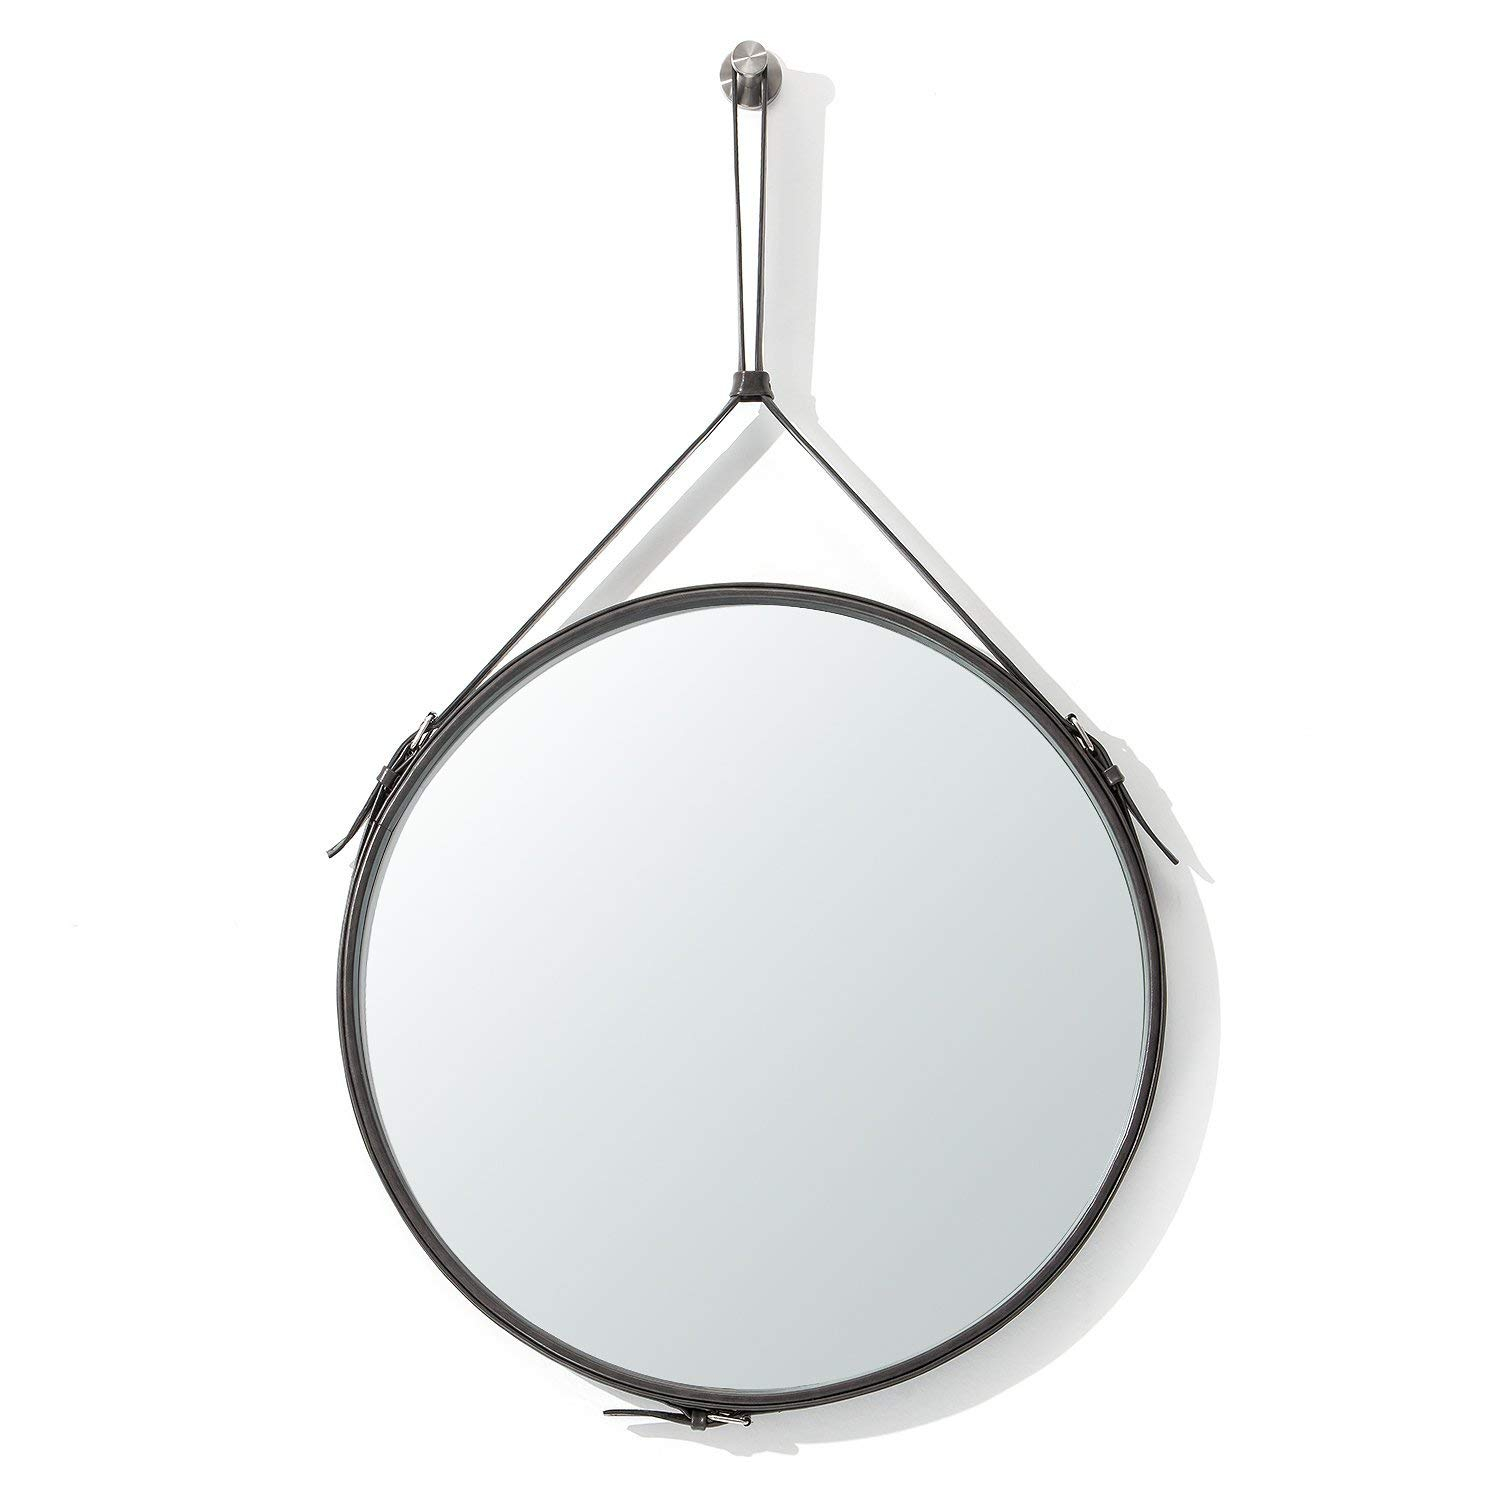 Buy Decorative Wall Mirror Round Shape Kentwood Collection Throughout Kentwood Round Wall Mirrors (View 11 of 20)